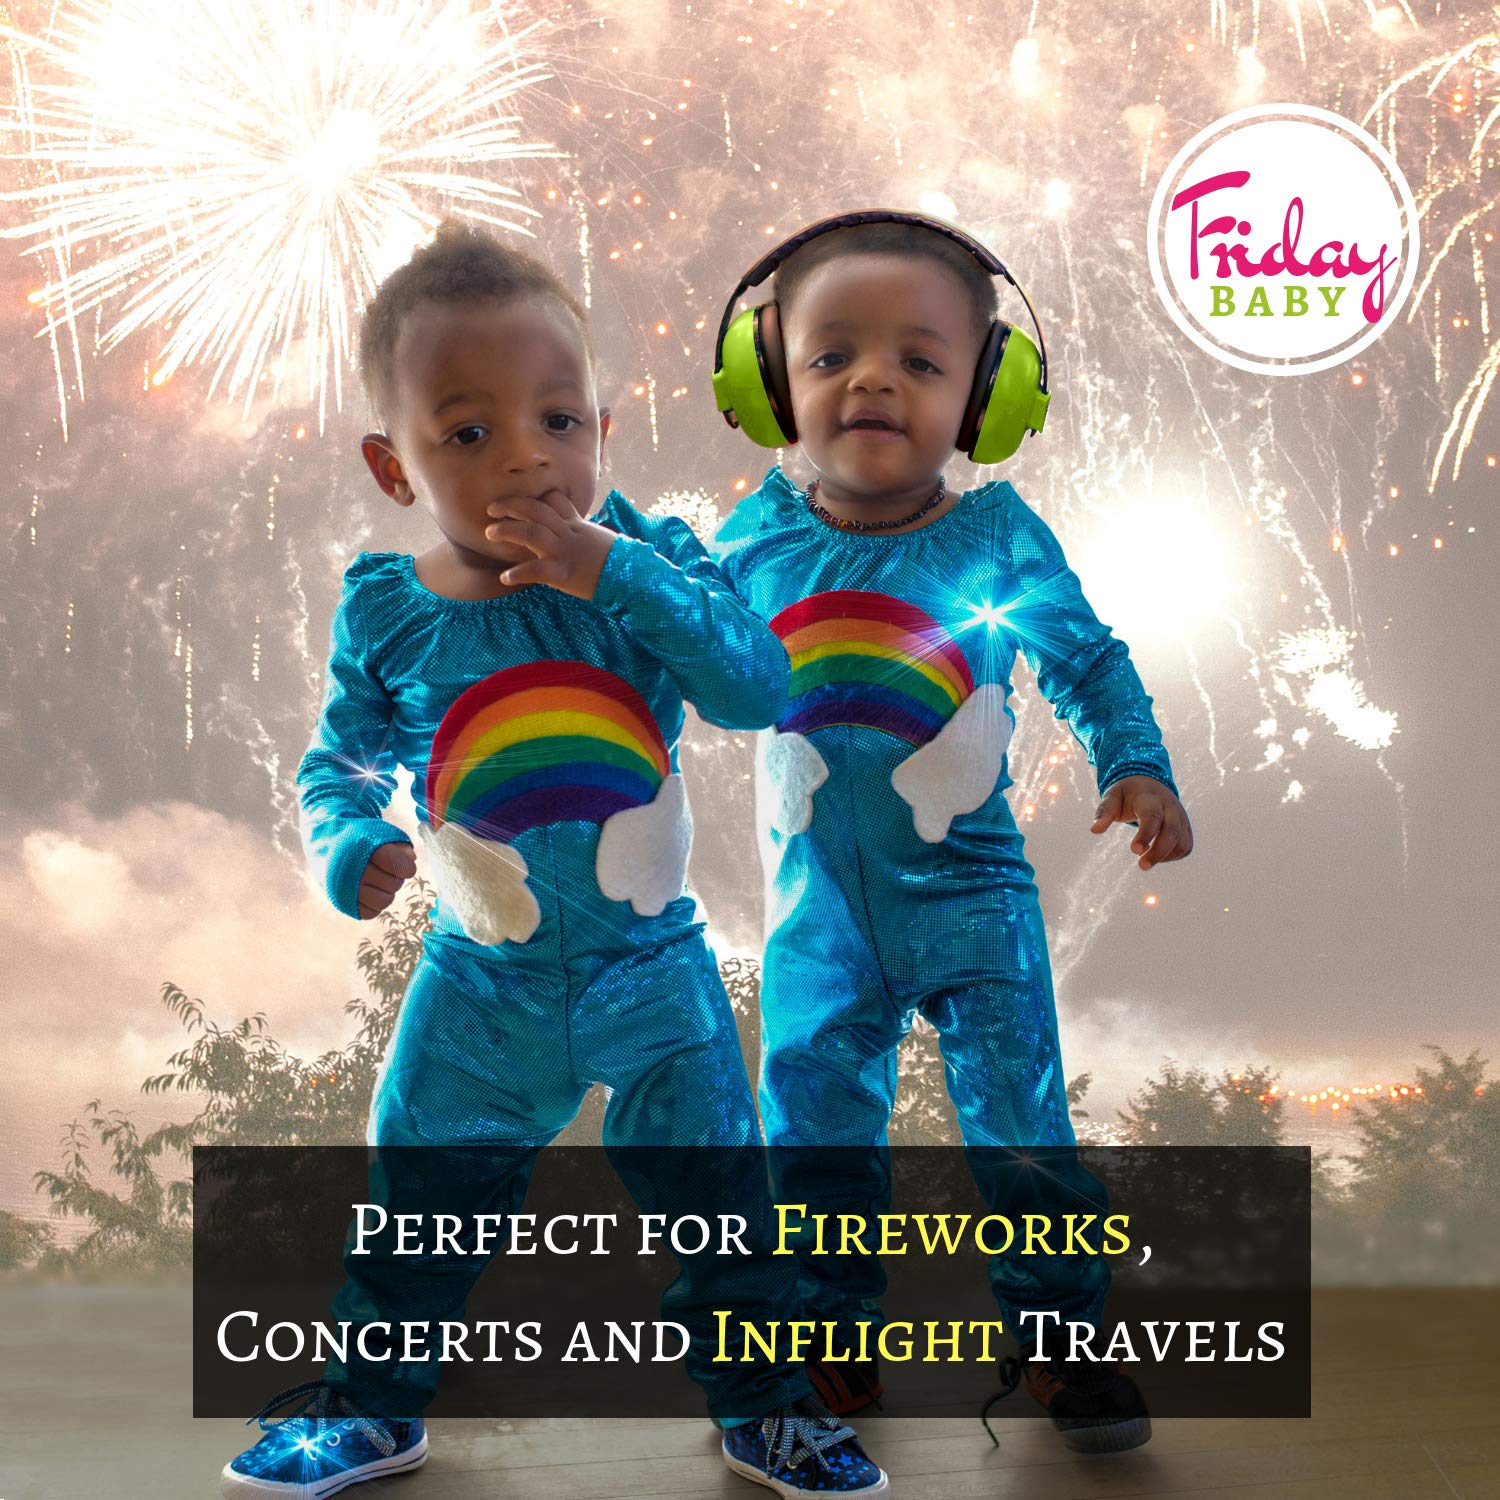 Baby Ear Protection - Comfortable and Adjustable Premium Noise Cancelling Headphones for Babies, Infants, Newborns (0-2+ Years) | Best Baby Headphones Noise Reduction for Concerts, Fireworks & Travels by Friday Baby (Image #3)